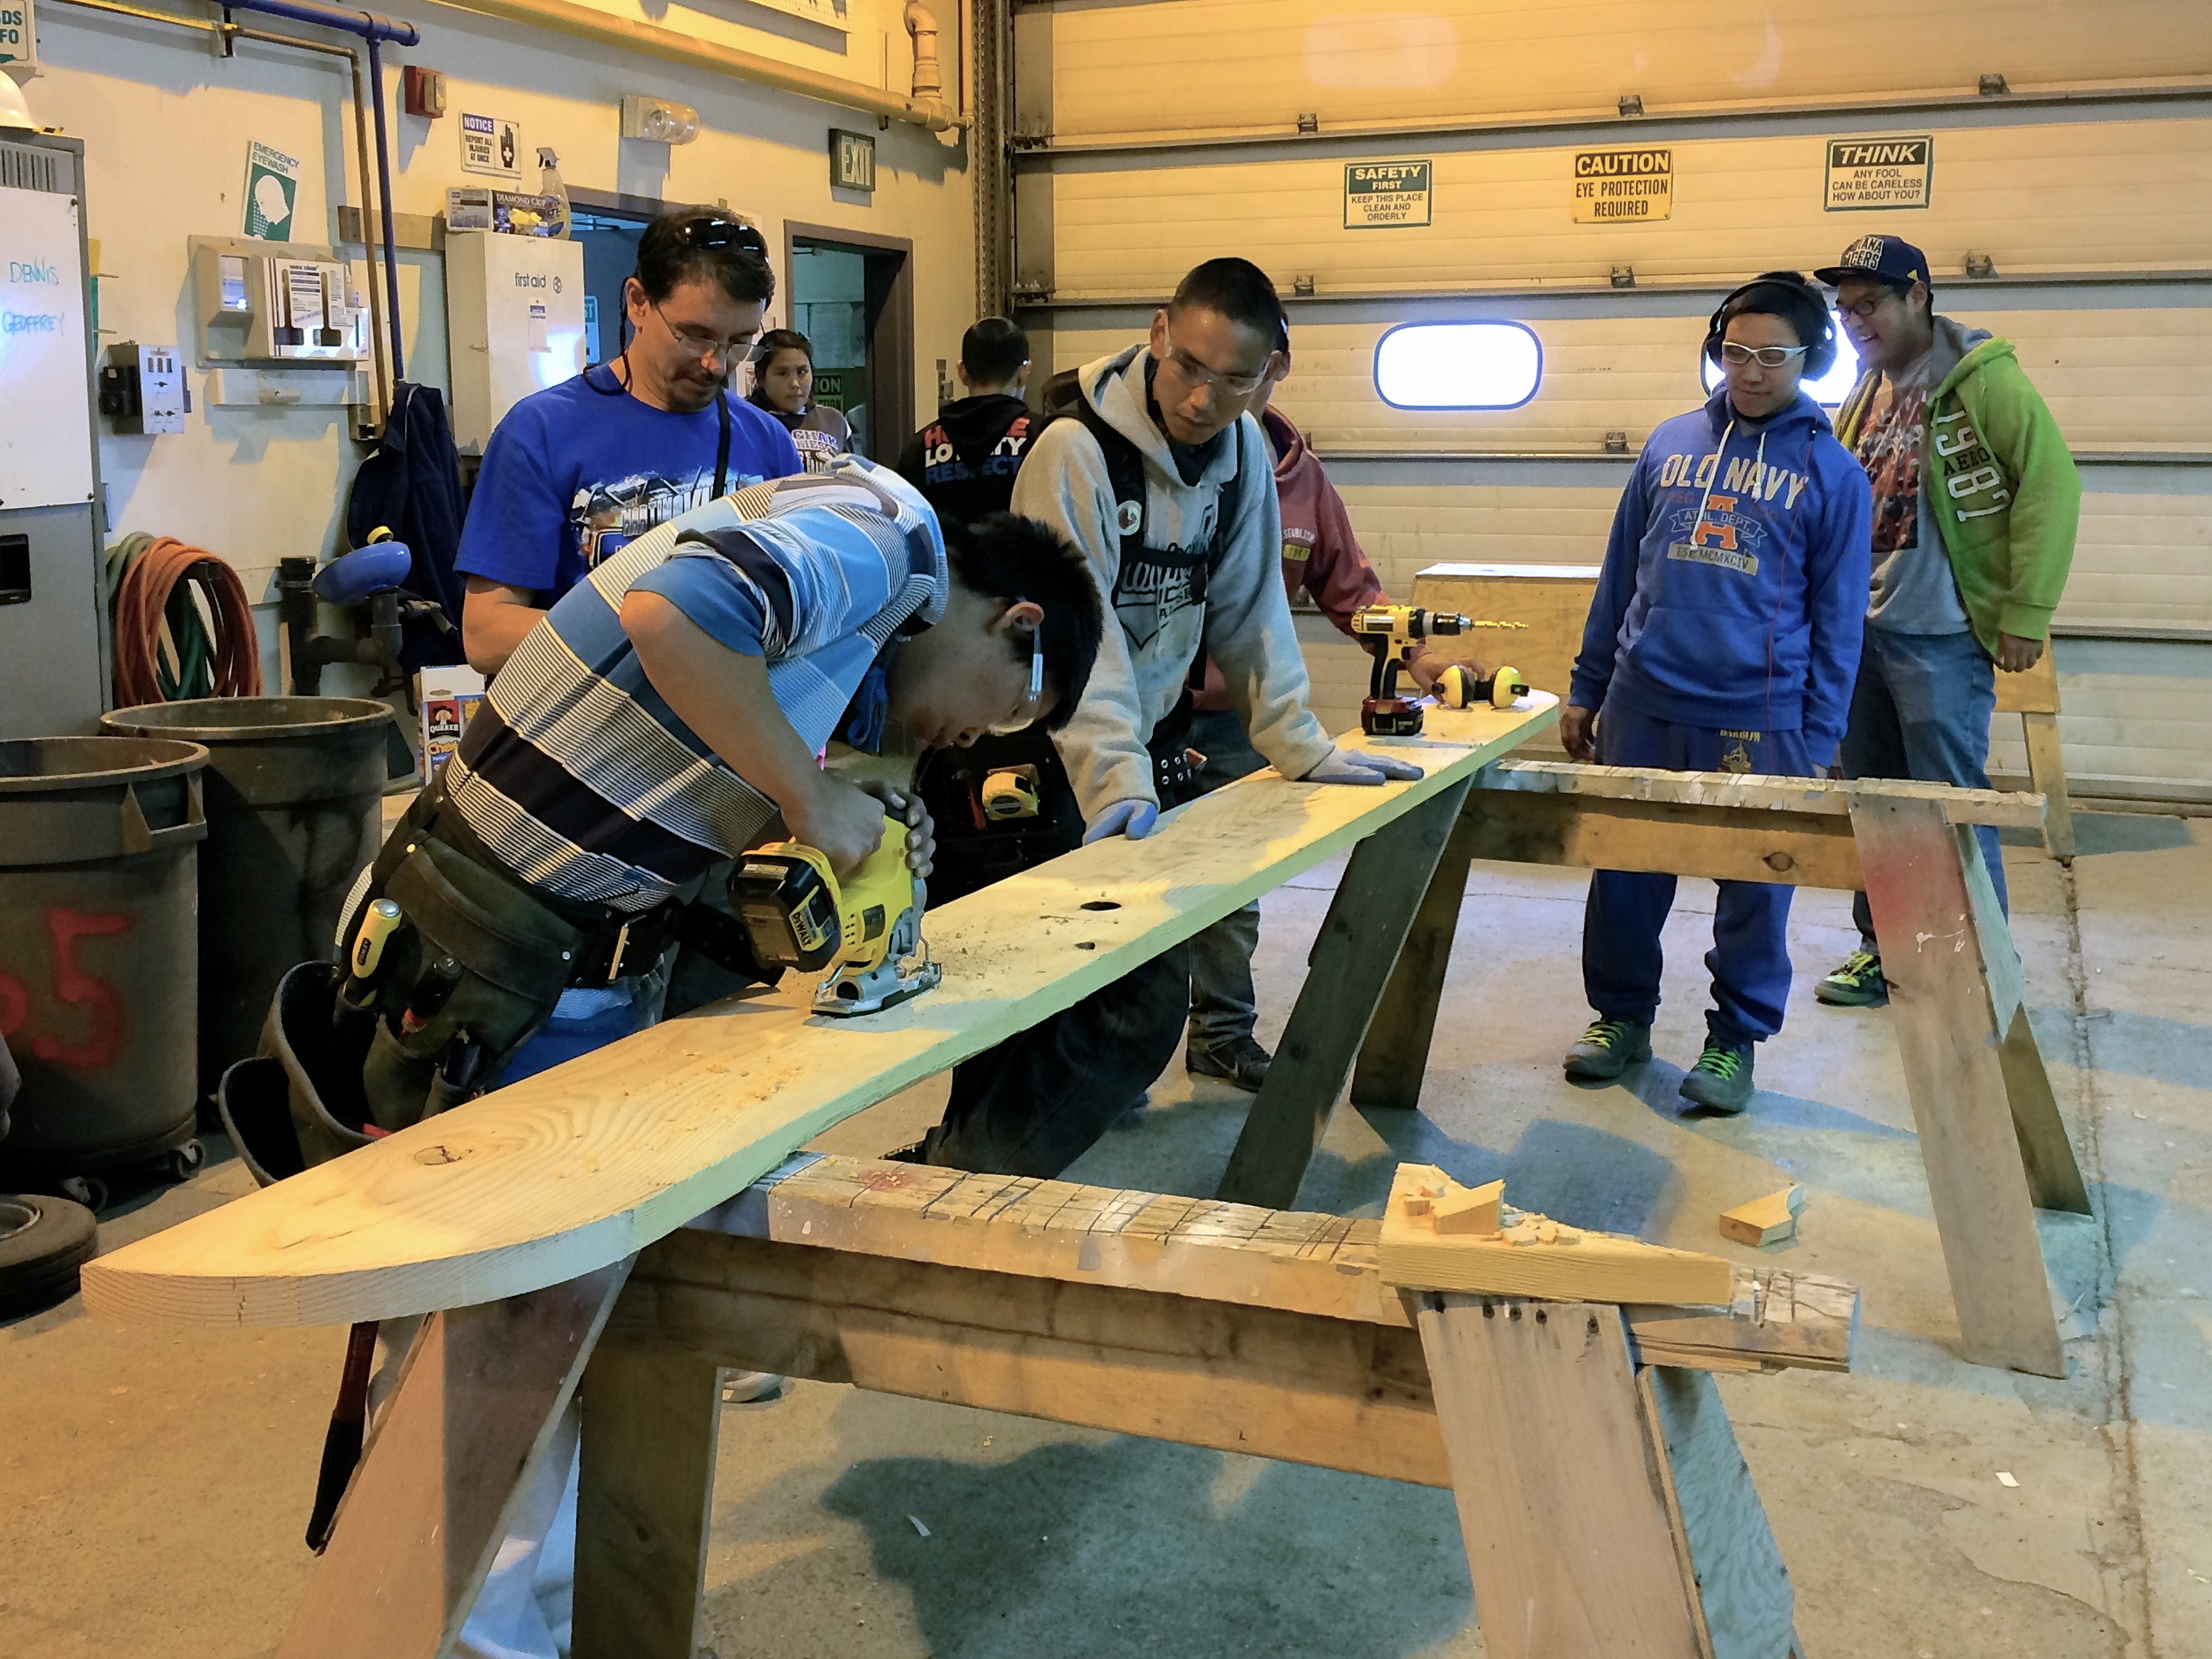 Dennis using a jig saw to cut holes for a forklift in the first ski, while Rob, Anu, Billy, and Mike O. look on.